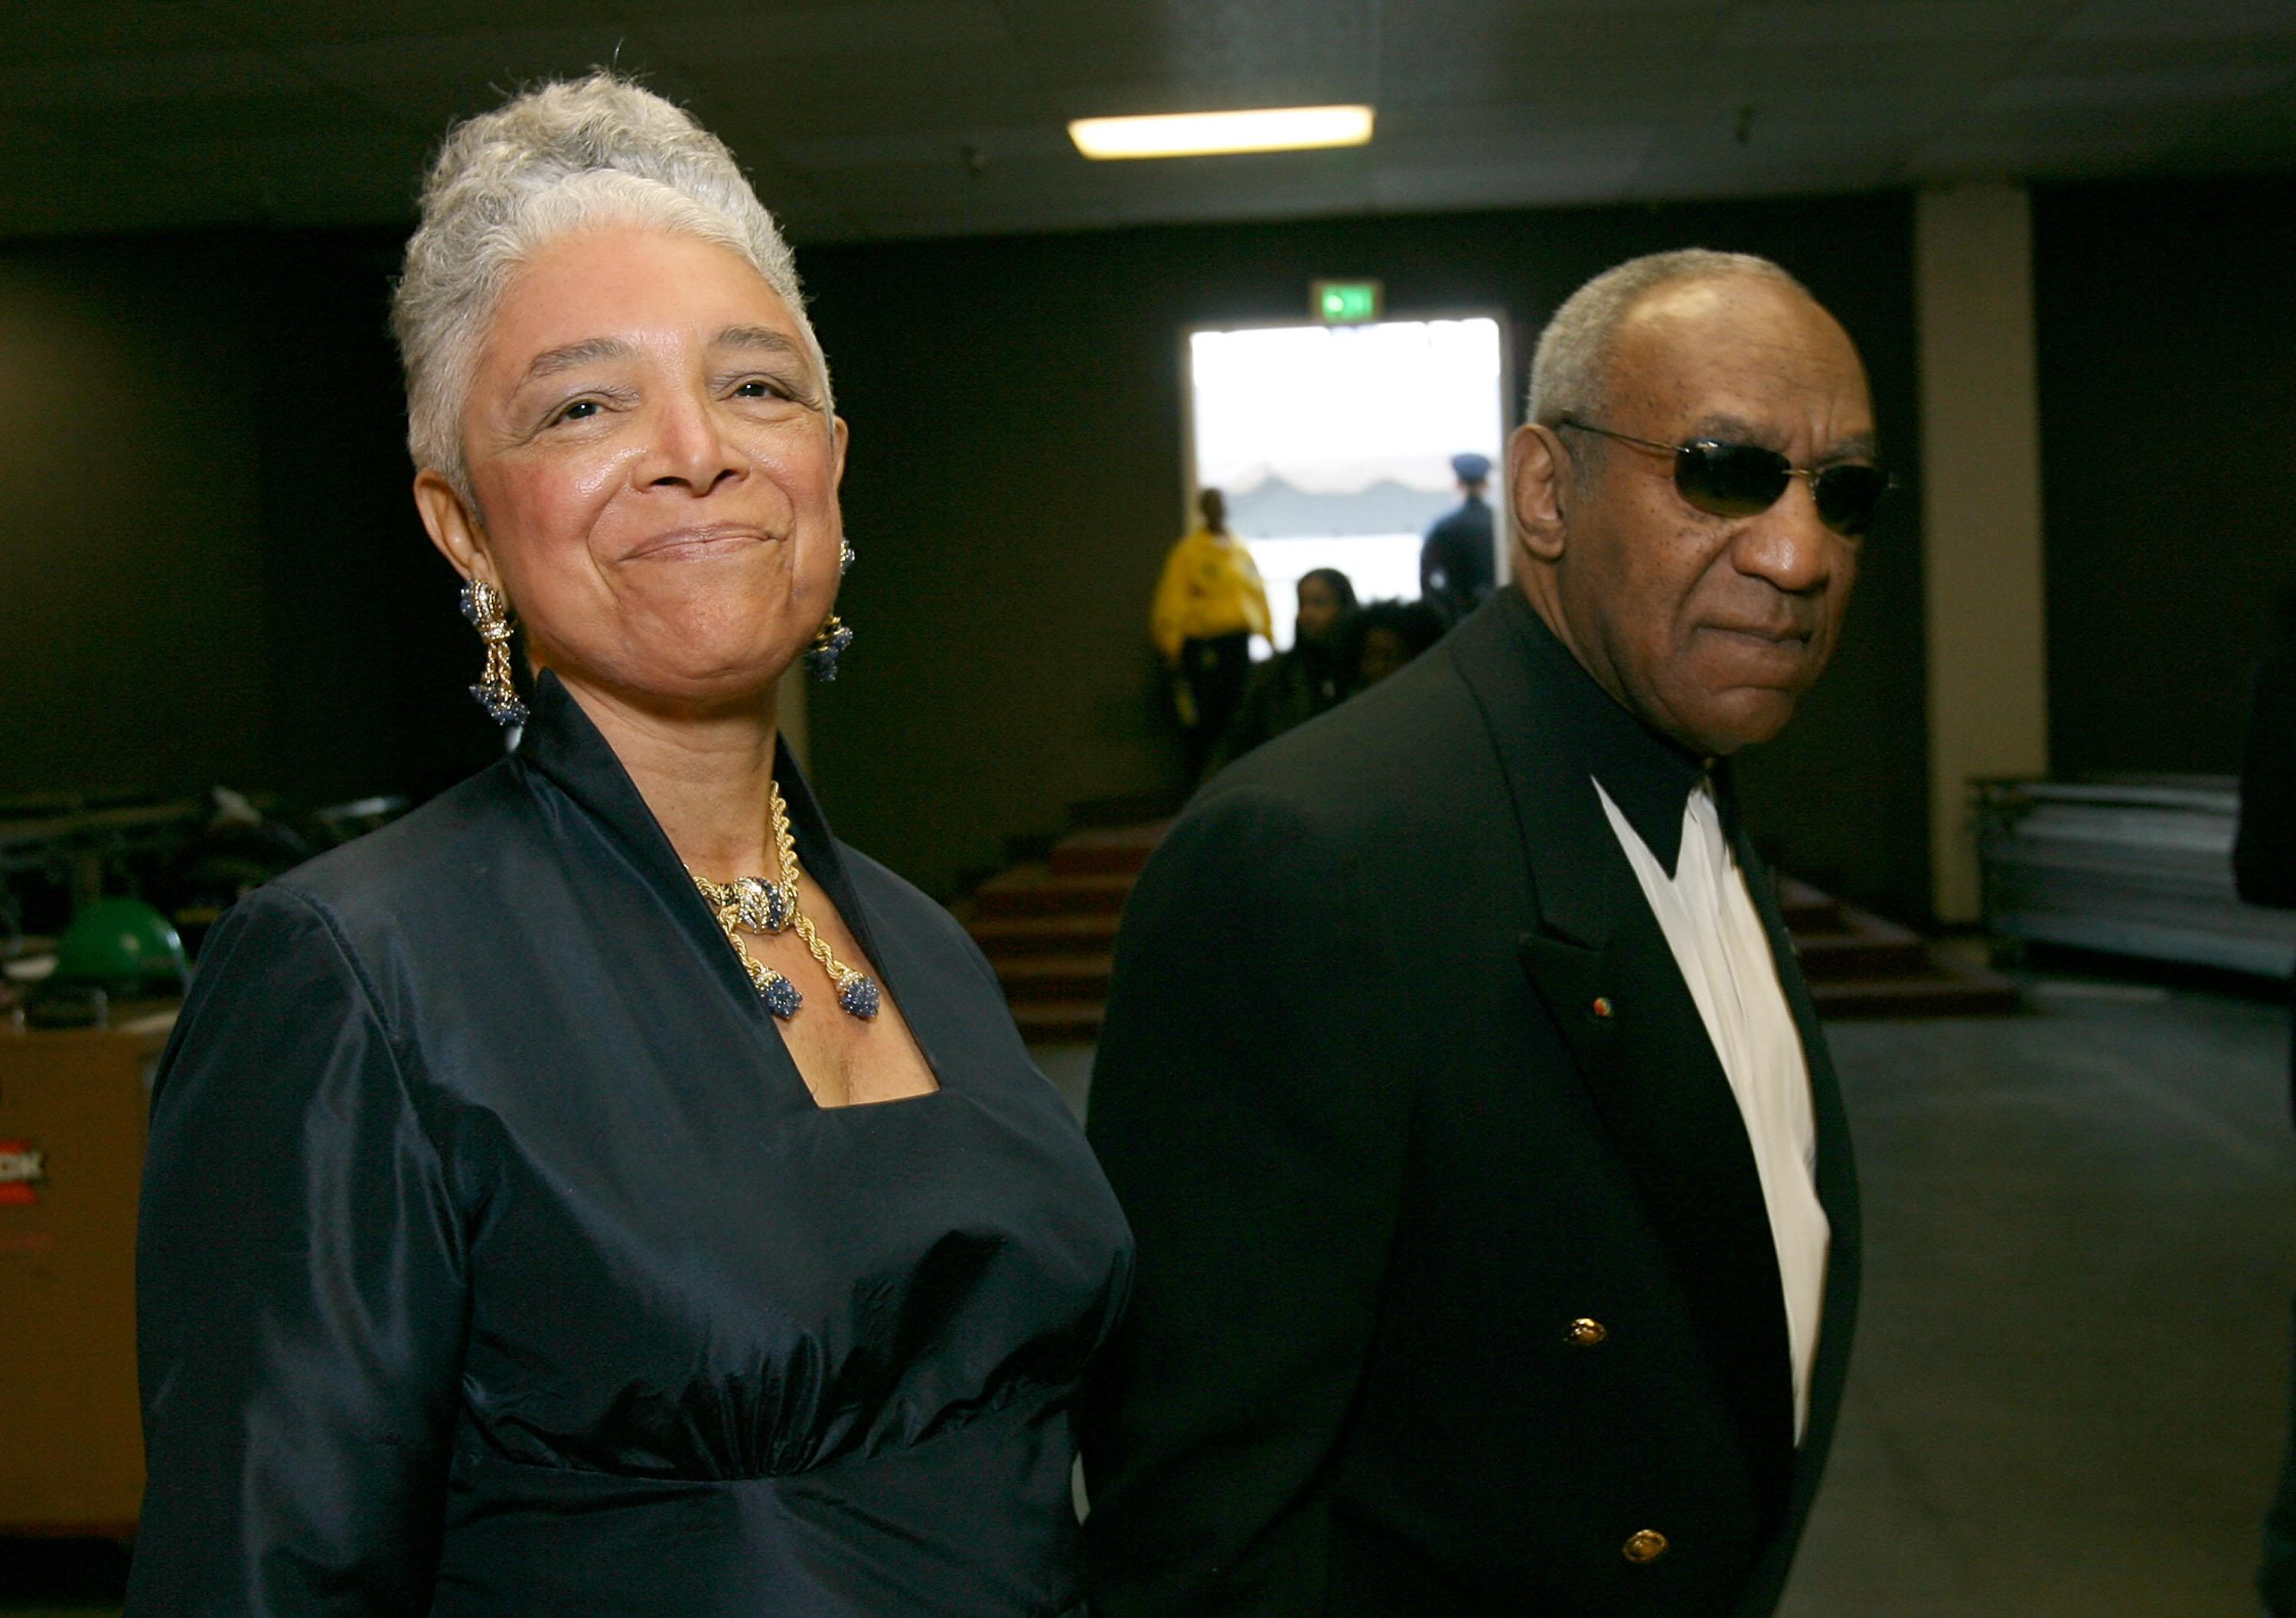 Bill Cosby's wife Camille speaks up